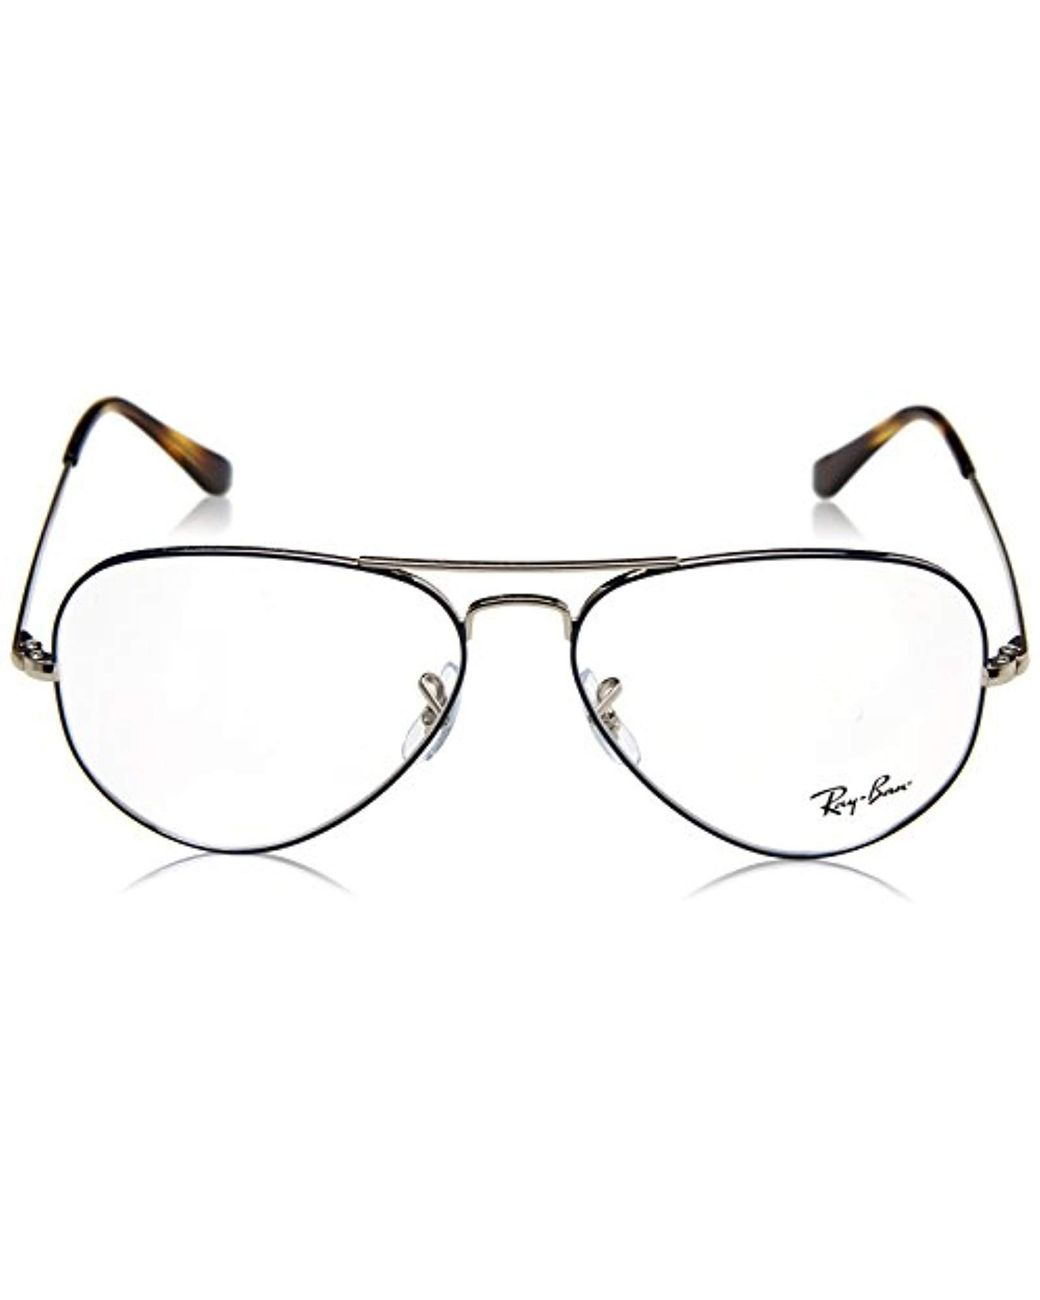 dfd448d09b51 Ray-Ban Rx6489 2970 55 Aviator Glasses In Silver On Blue Rx6489 2970 55 in  Metallic - Save 16% - Lyst